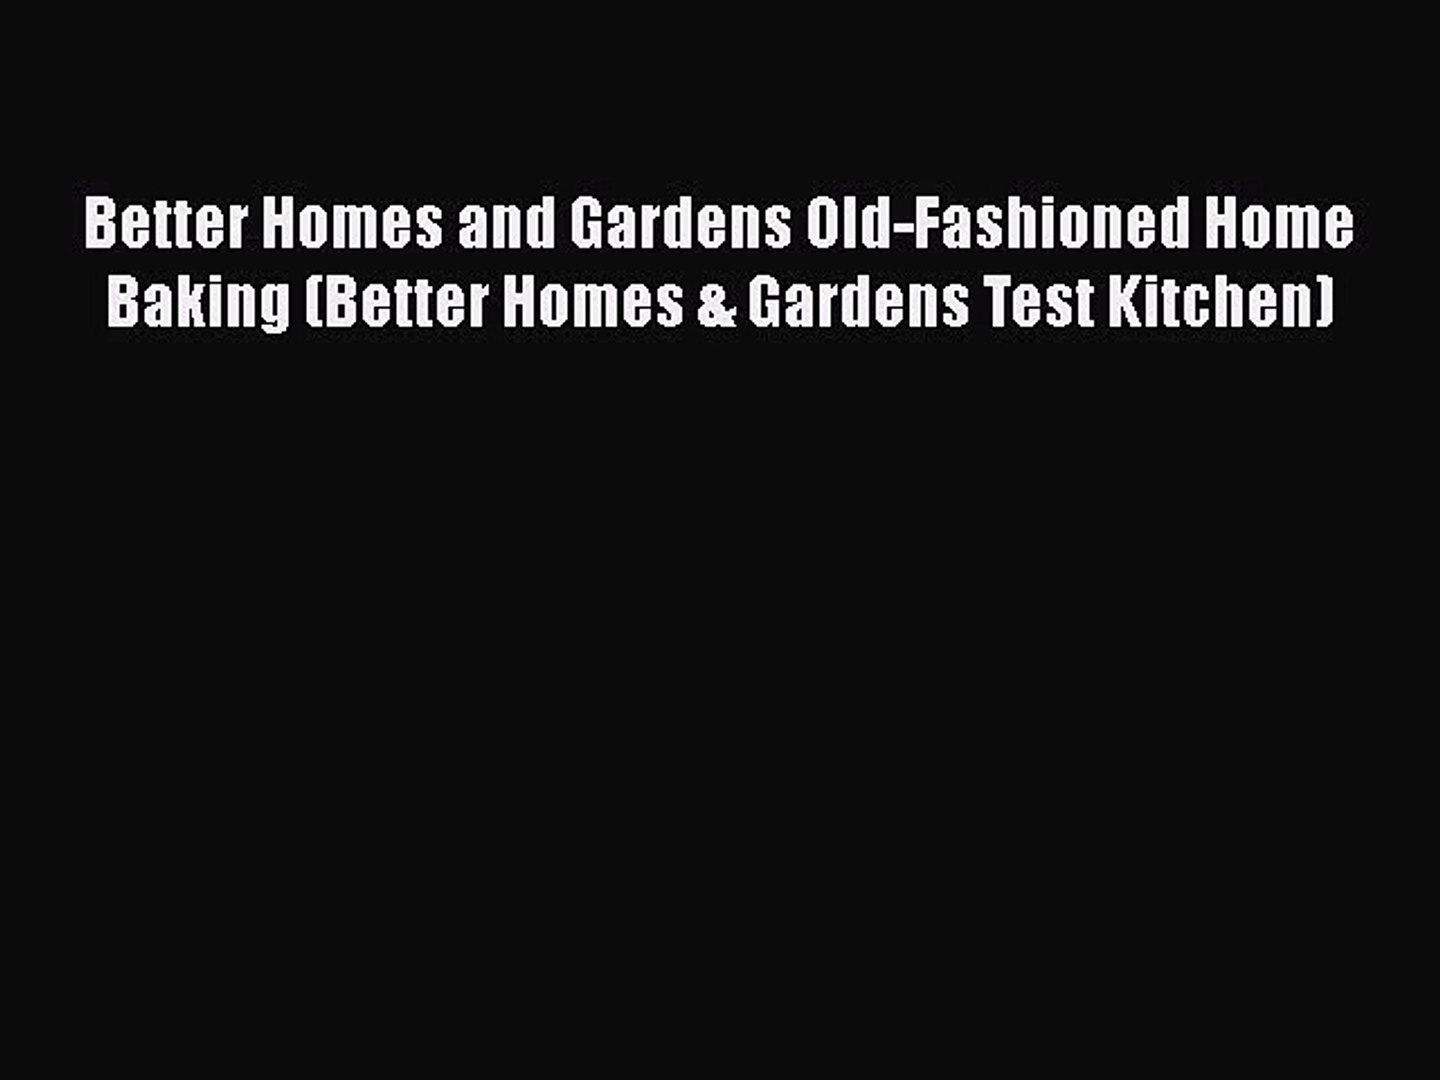 Better Homes and Gardens Old-Fashioned Home Baking (Better Homes & Gardens Test Kitchen) Free